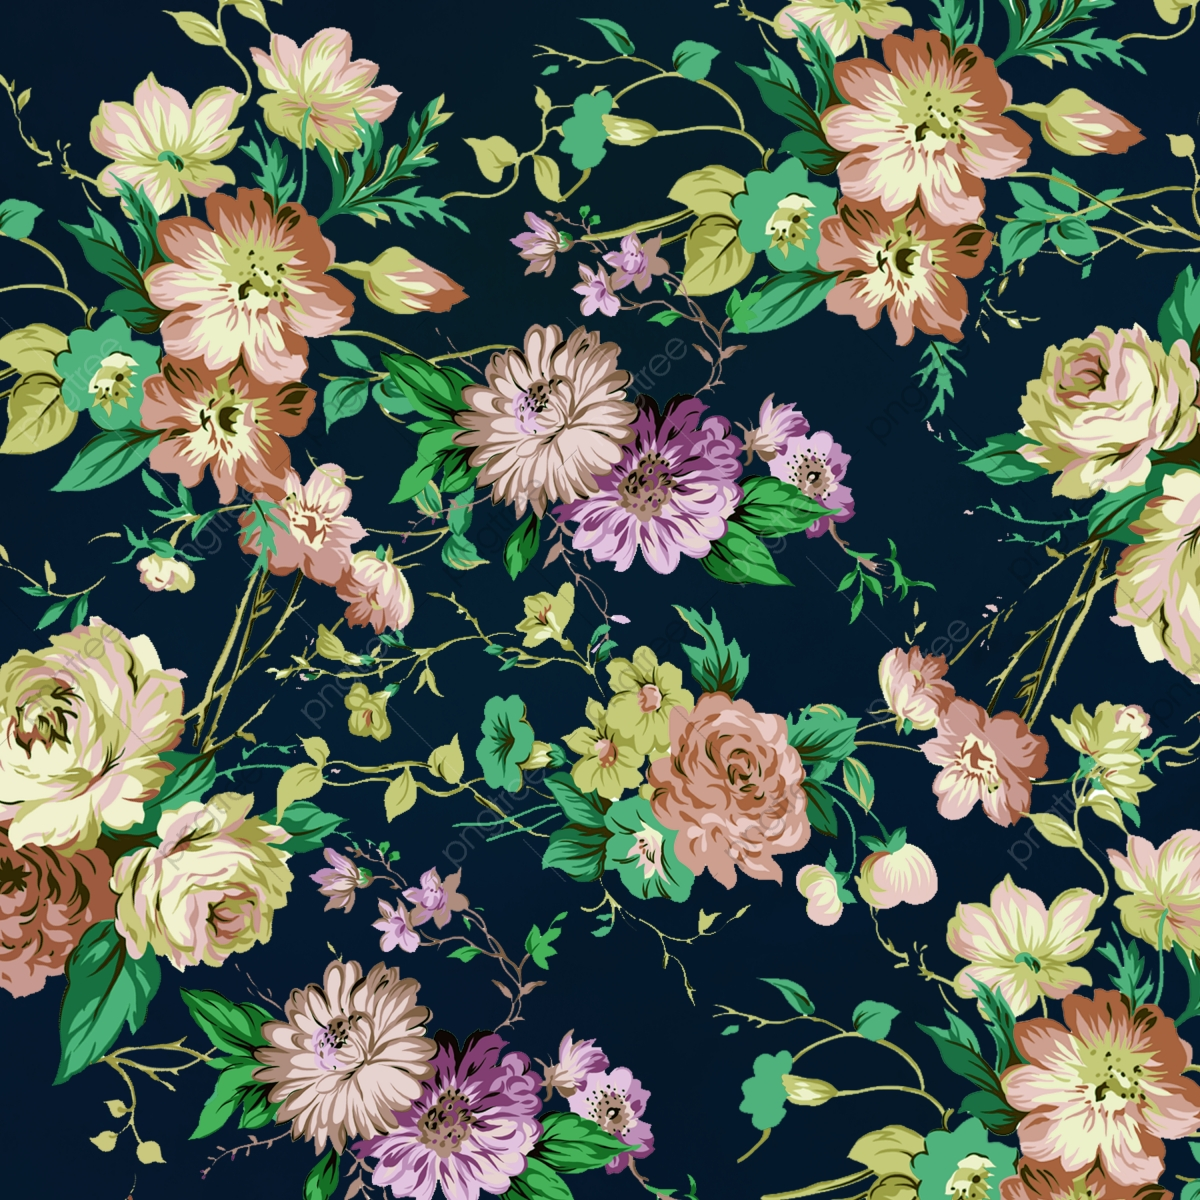 Beautiful Vintage Floral Background Design Floral Floral